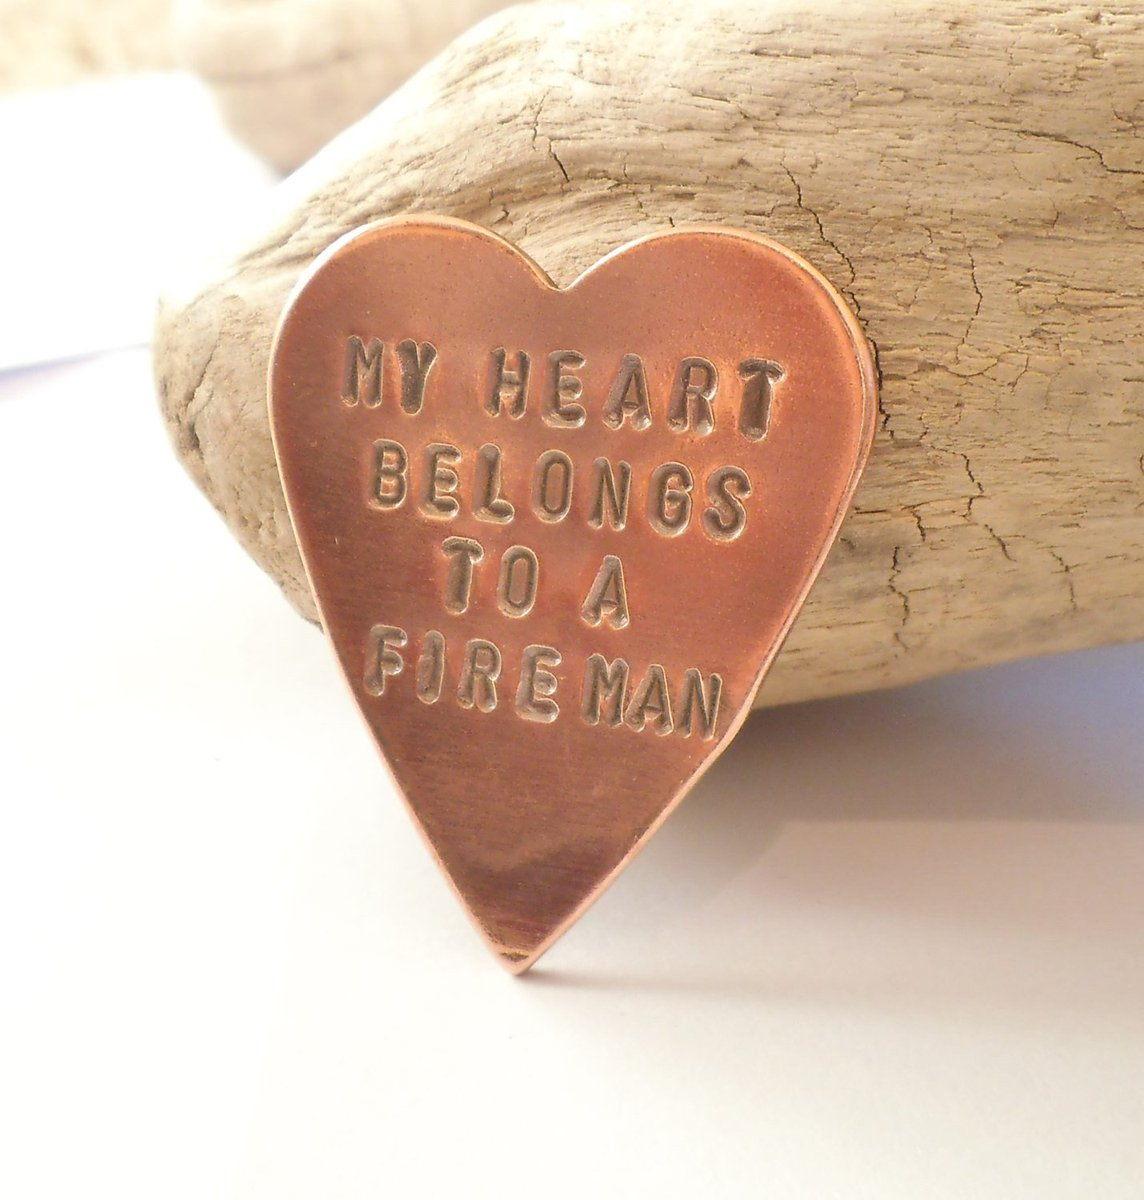 Copper Wallet Insert for Firefighter Daddy My Heart Belongs to a Fireman Husband Fathers Day for Dad Police Officer Gift Marine Deployment http://tuppu.net/1172adce #Shopify #CandTCustomLures #For_firefighter